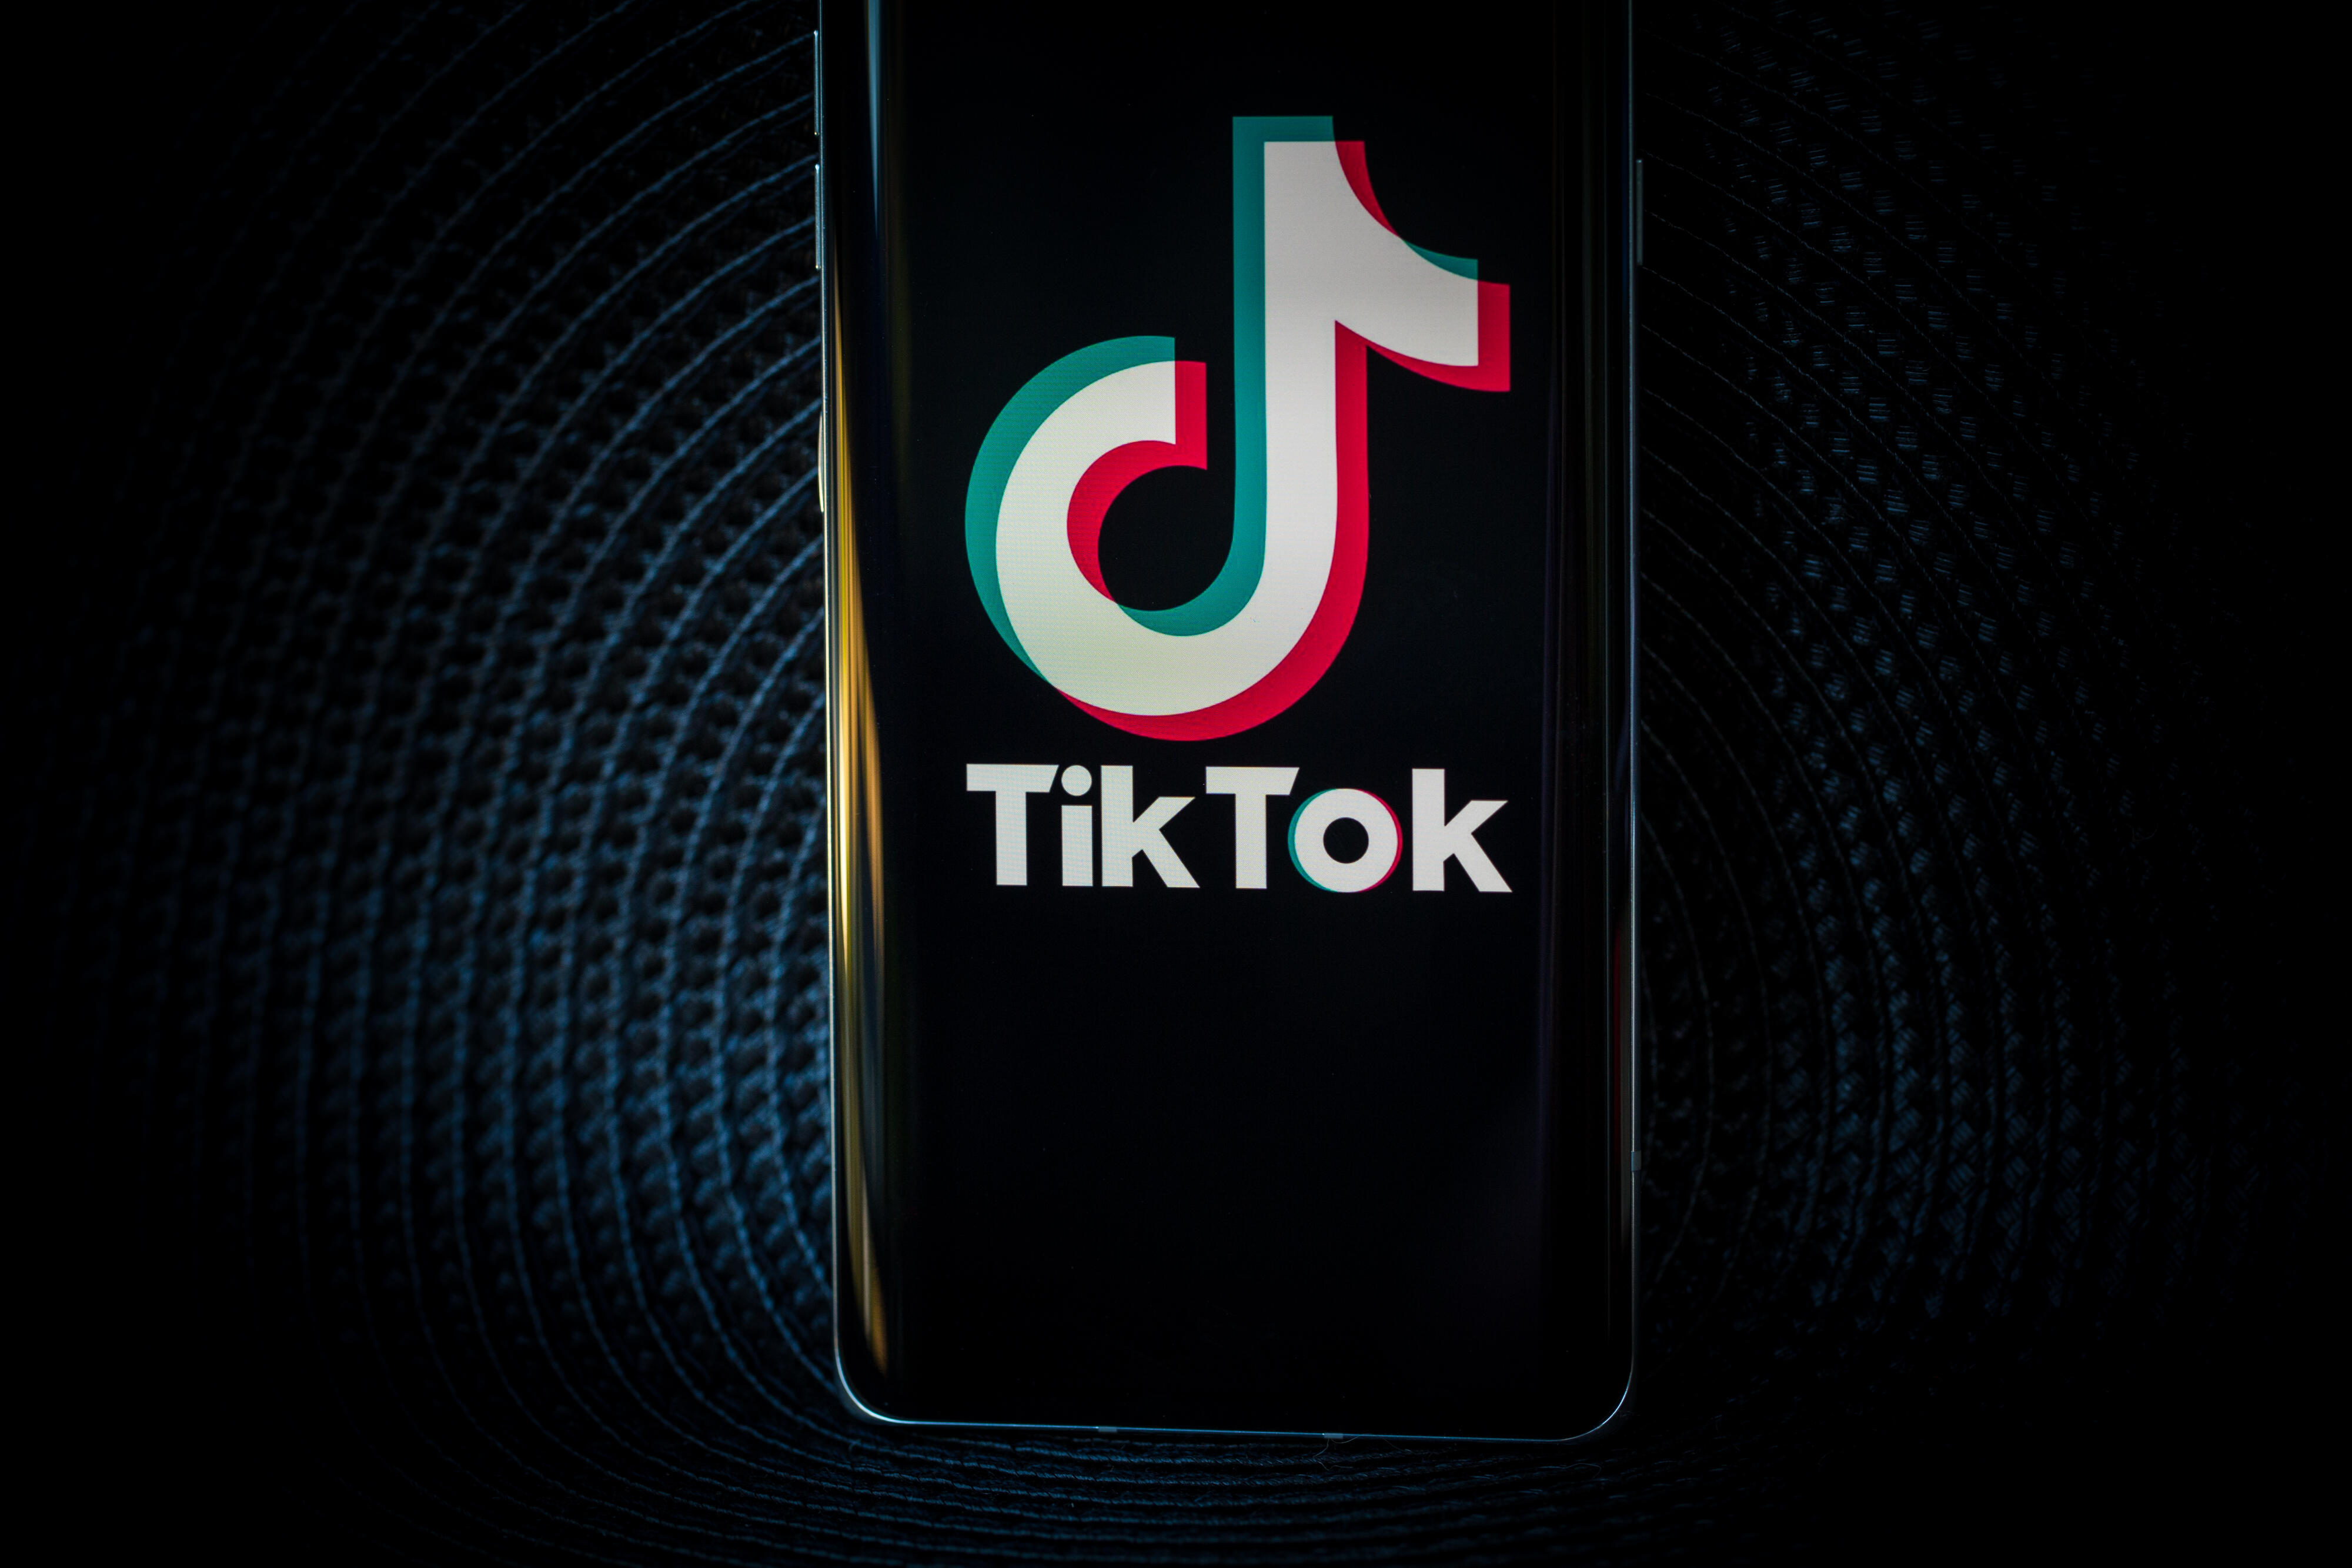 TikTok launches Twitter account to 'set the record straight'